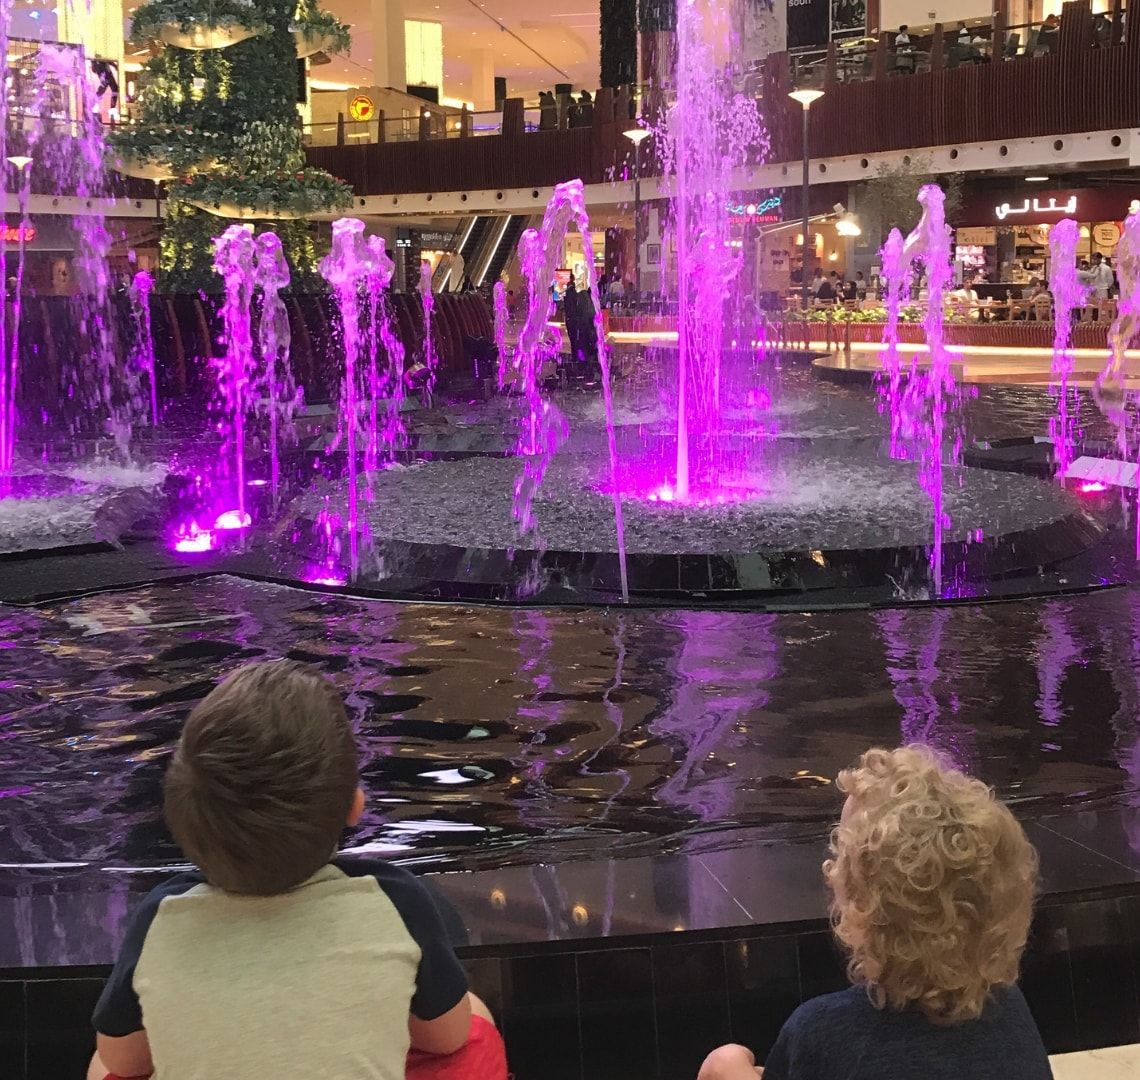 11 incredible things to do in Qatar - the Things looking at a light and water display at the fountains in Mall of Qatar